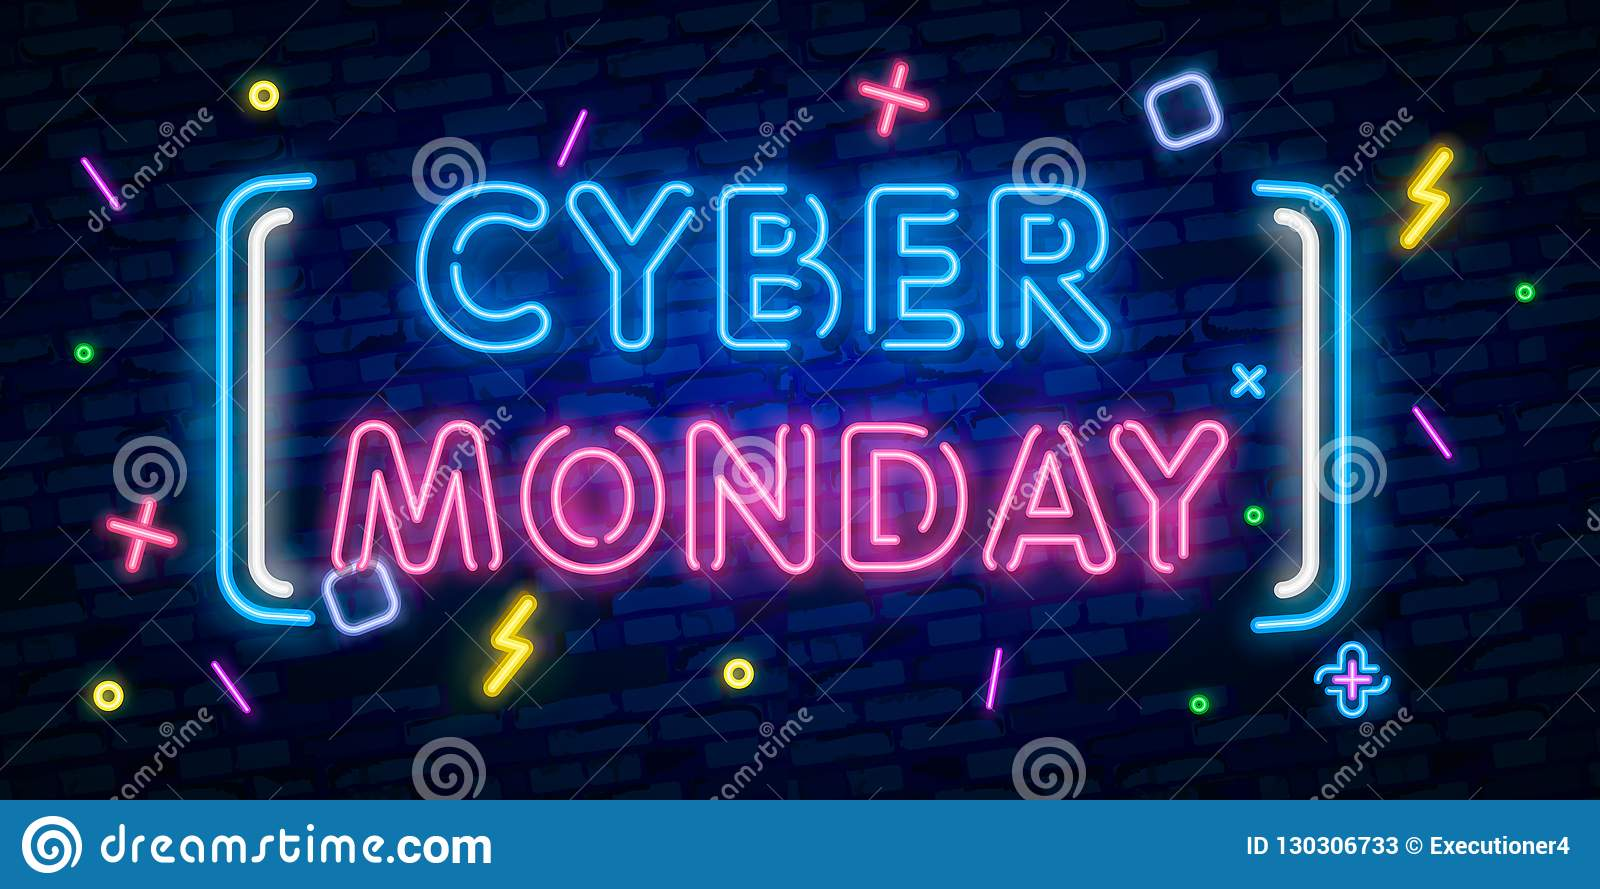 Cyber Monday, discount sale concept illustration in neon style, online shopping and marketing concept, vector illustration. Neon l